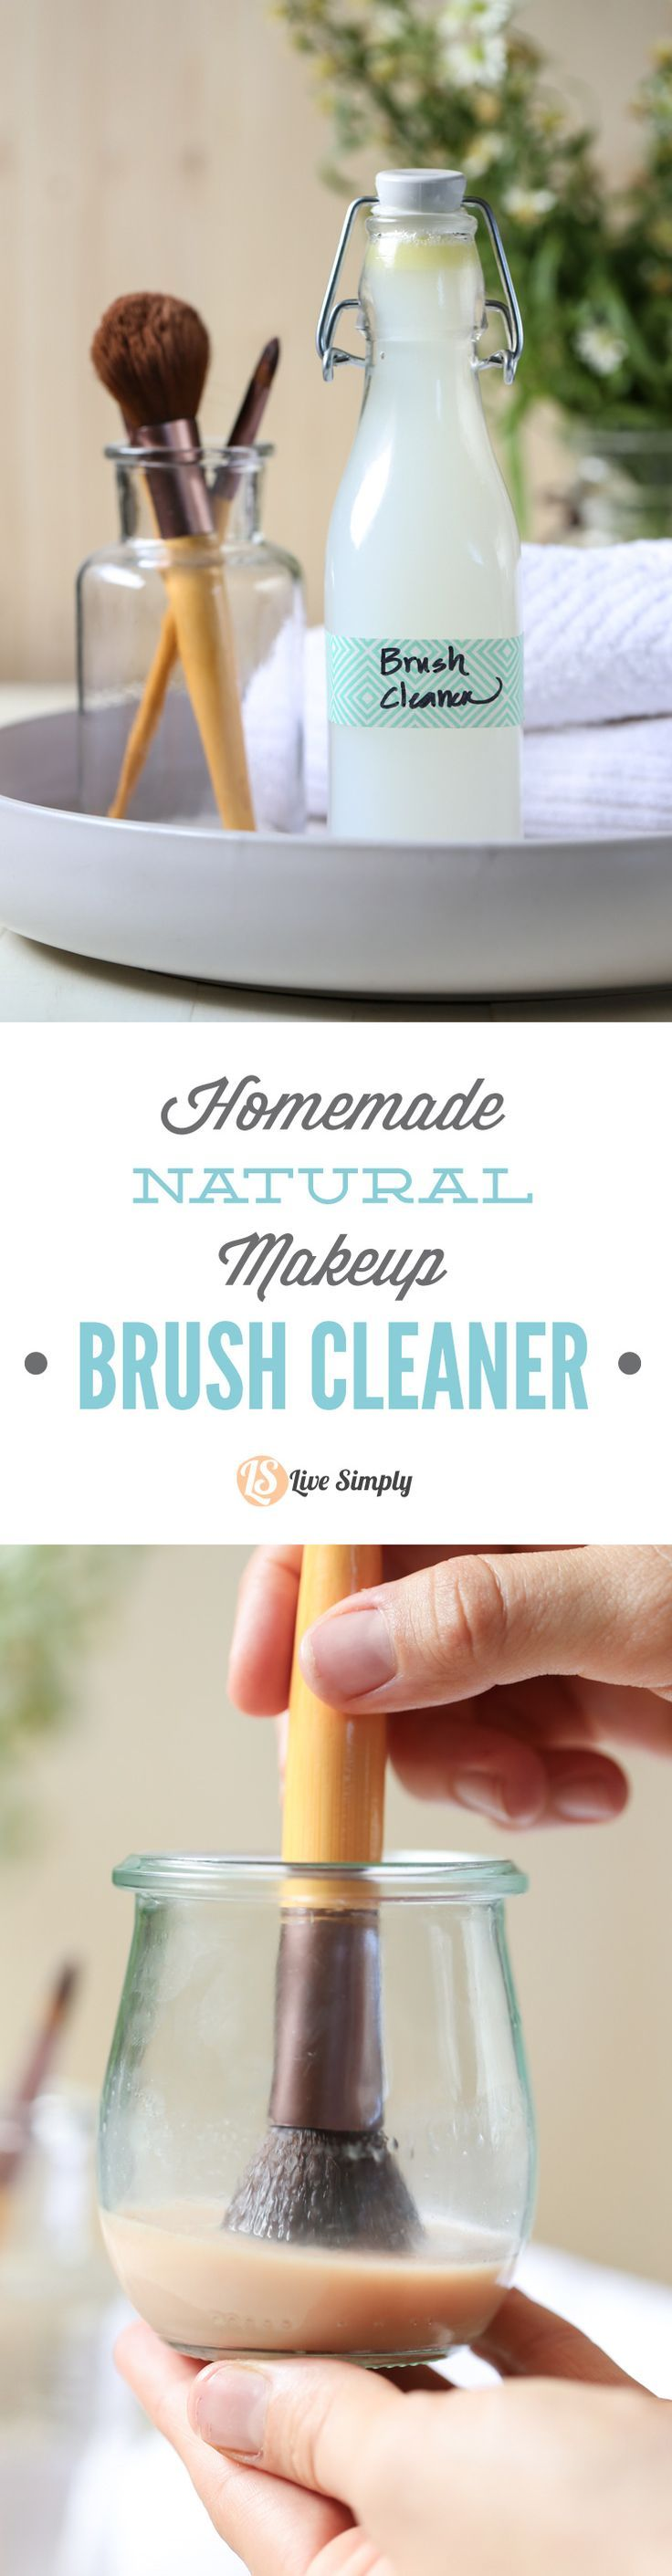 Homemade Natural Makeup Brush Cleaner Recipe makeup